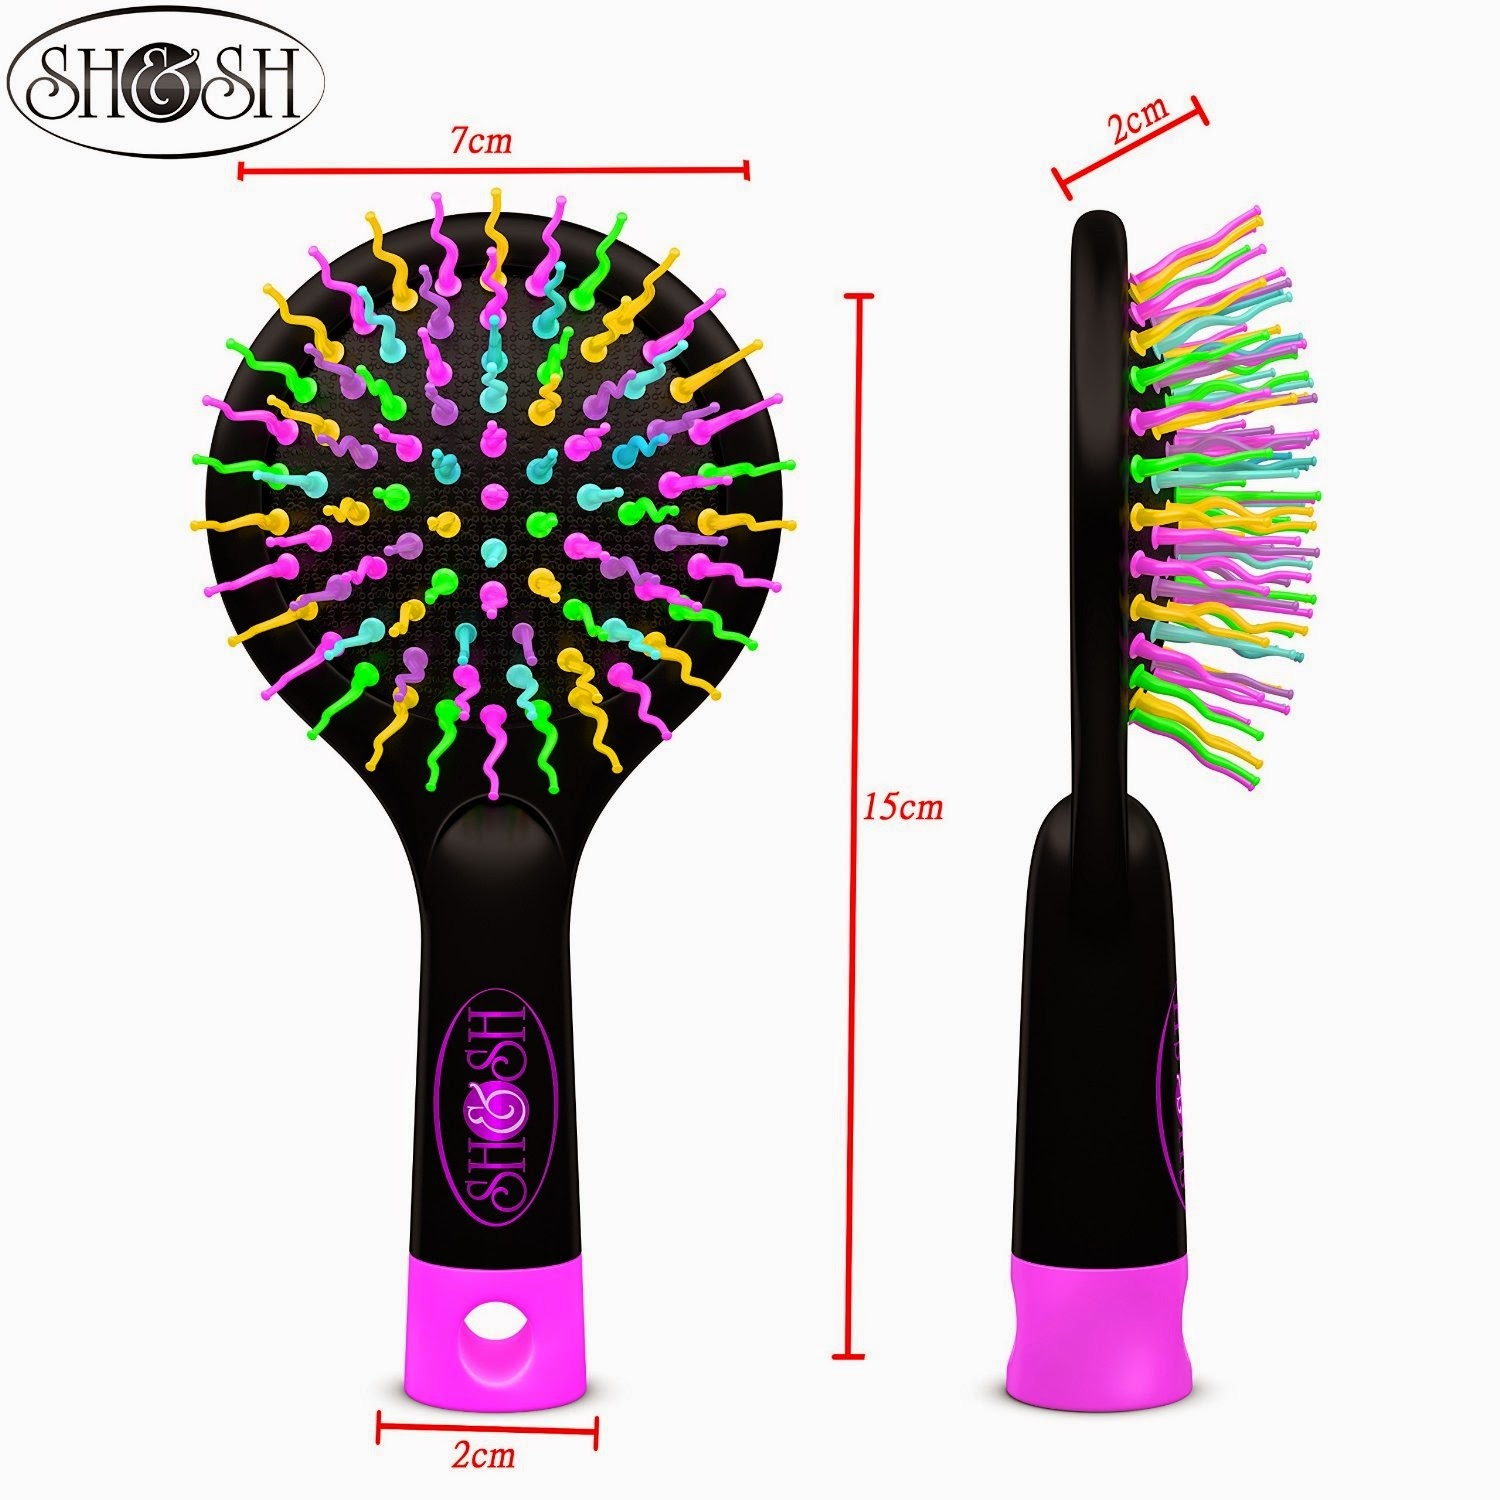 #SHSH Hair Brush